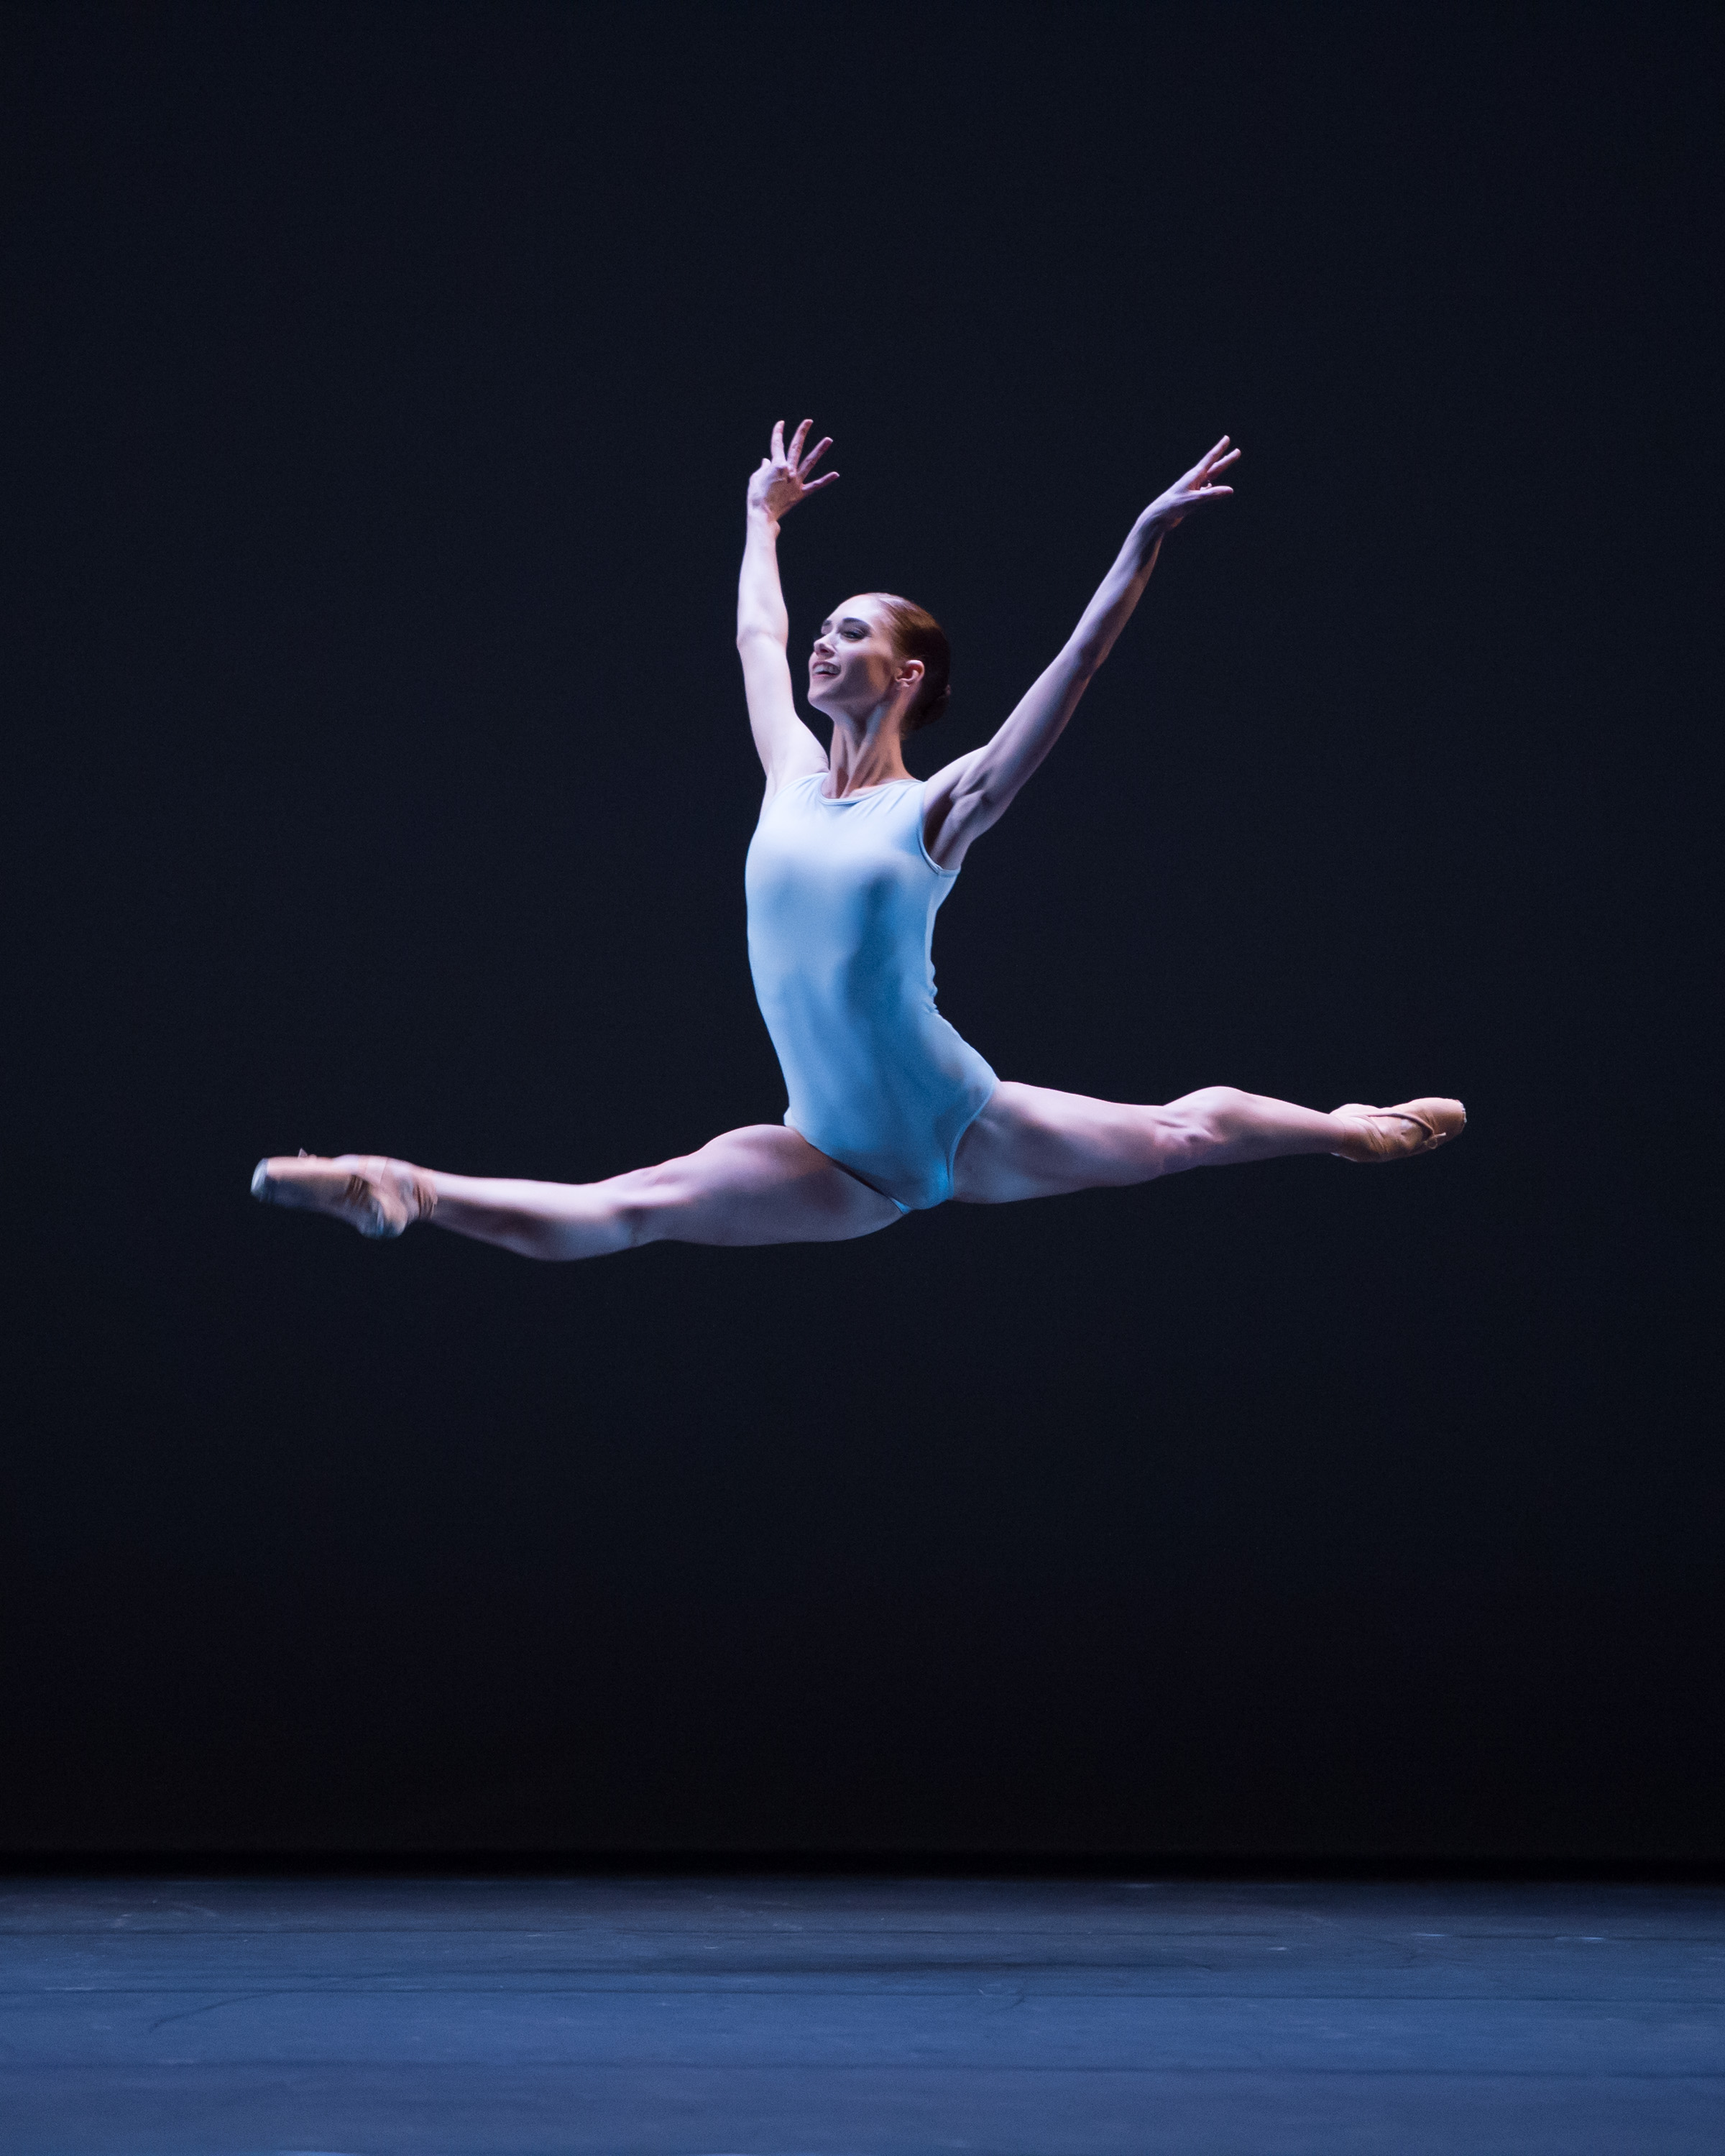 Alison McWhinney performing in the 2014 English National Ballet Emerging Dancer competition